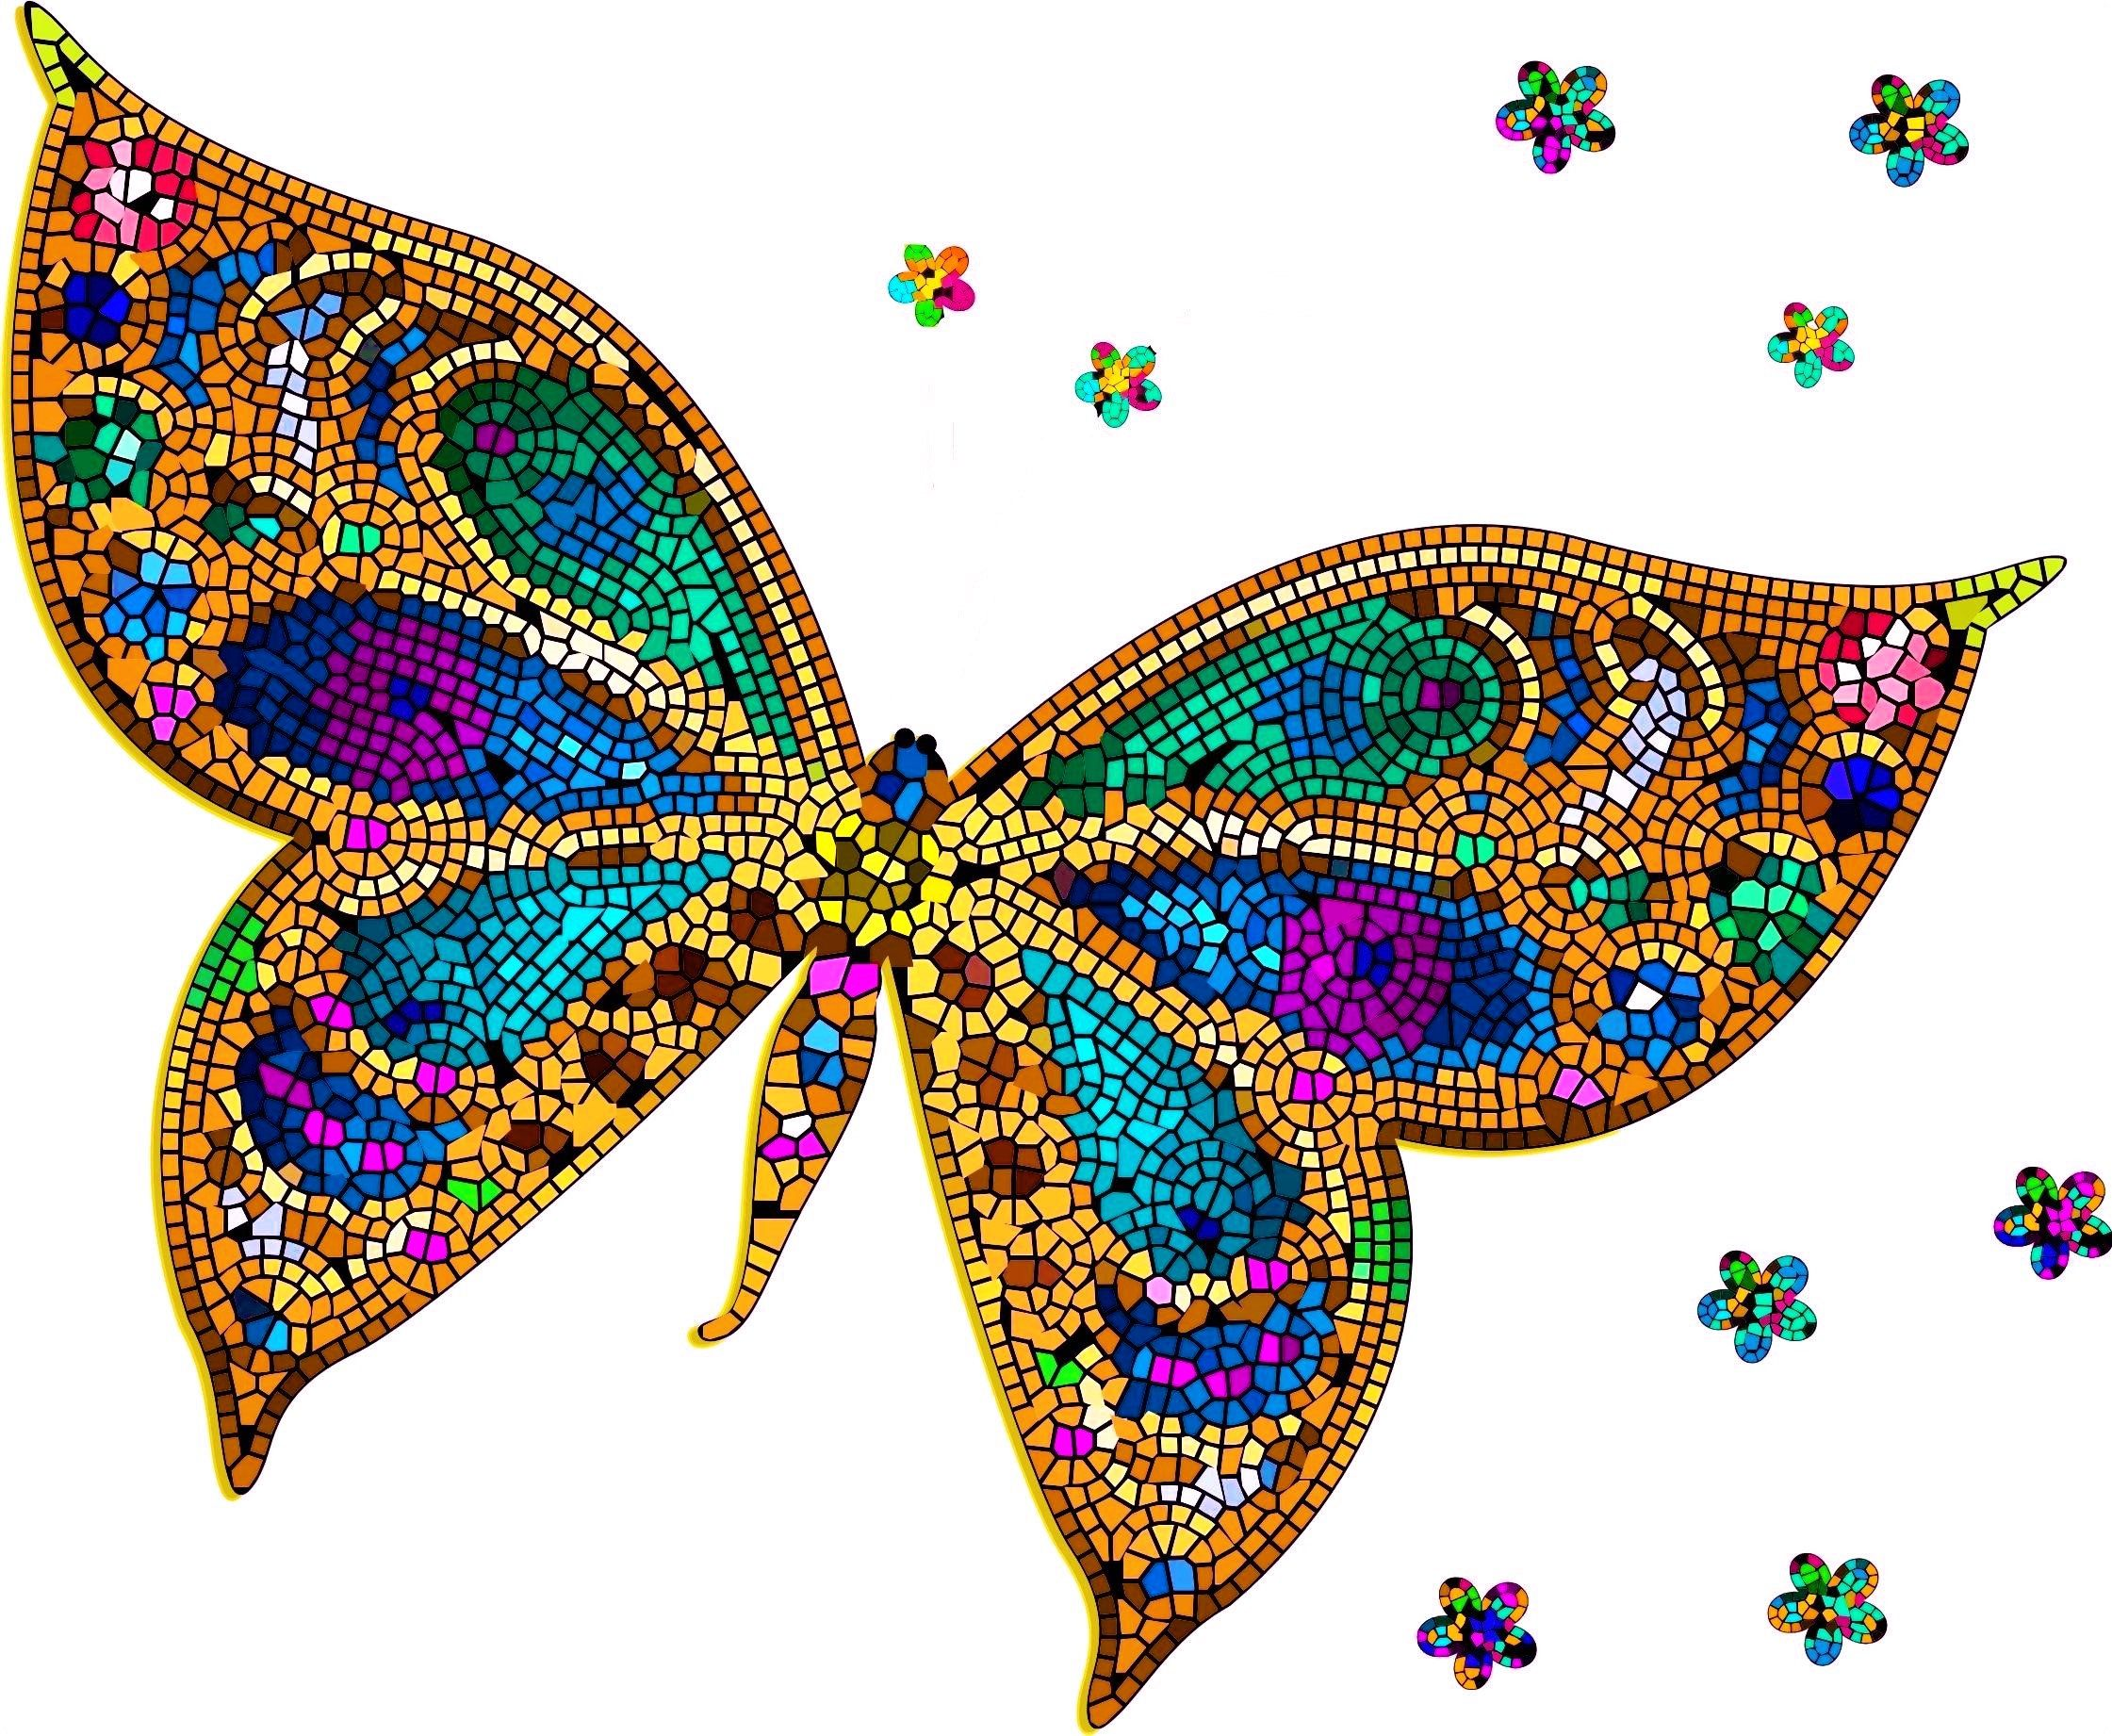 22+ Butterfly decals for glass ideas in 2021